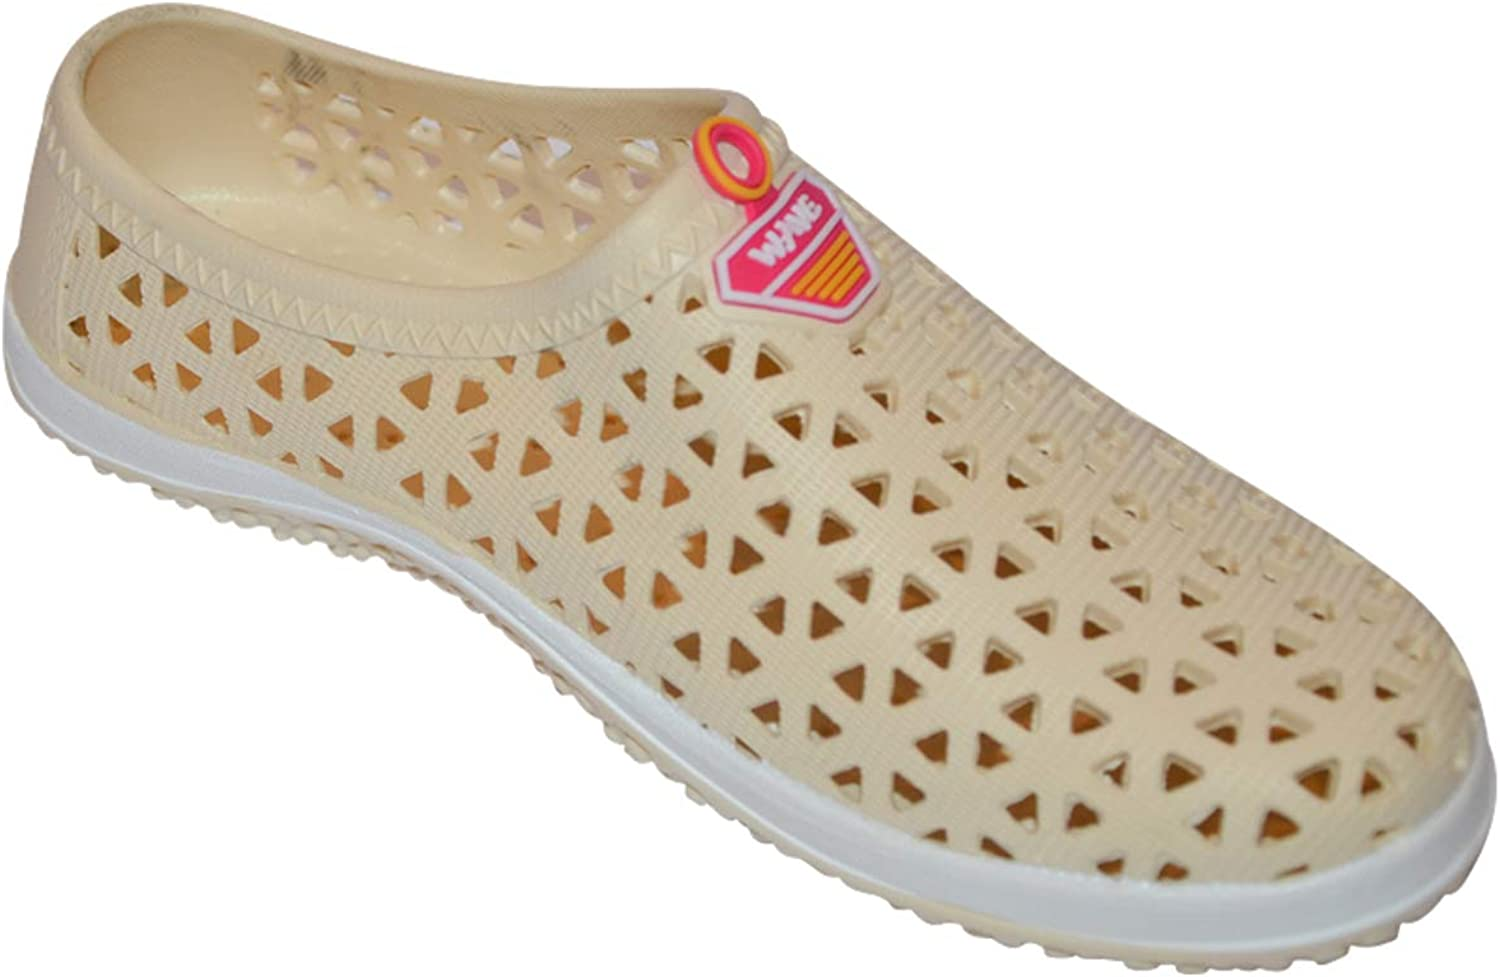 Easy USA Women's Slip-on Aquatic Aqua Water shoes